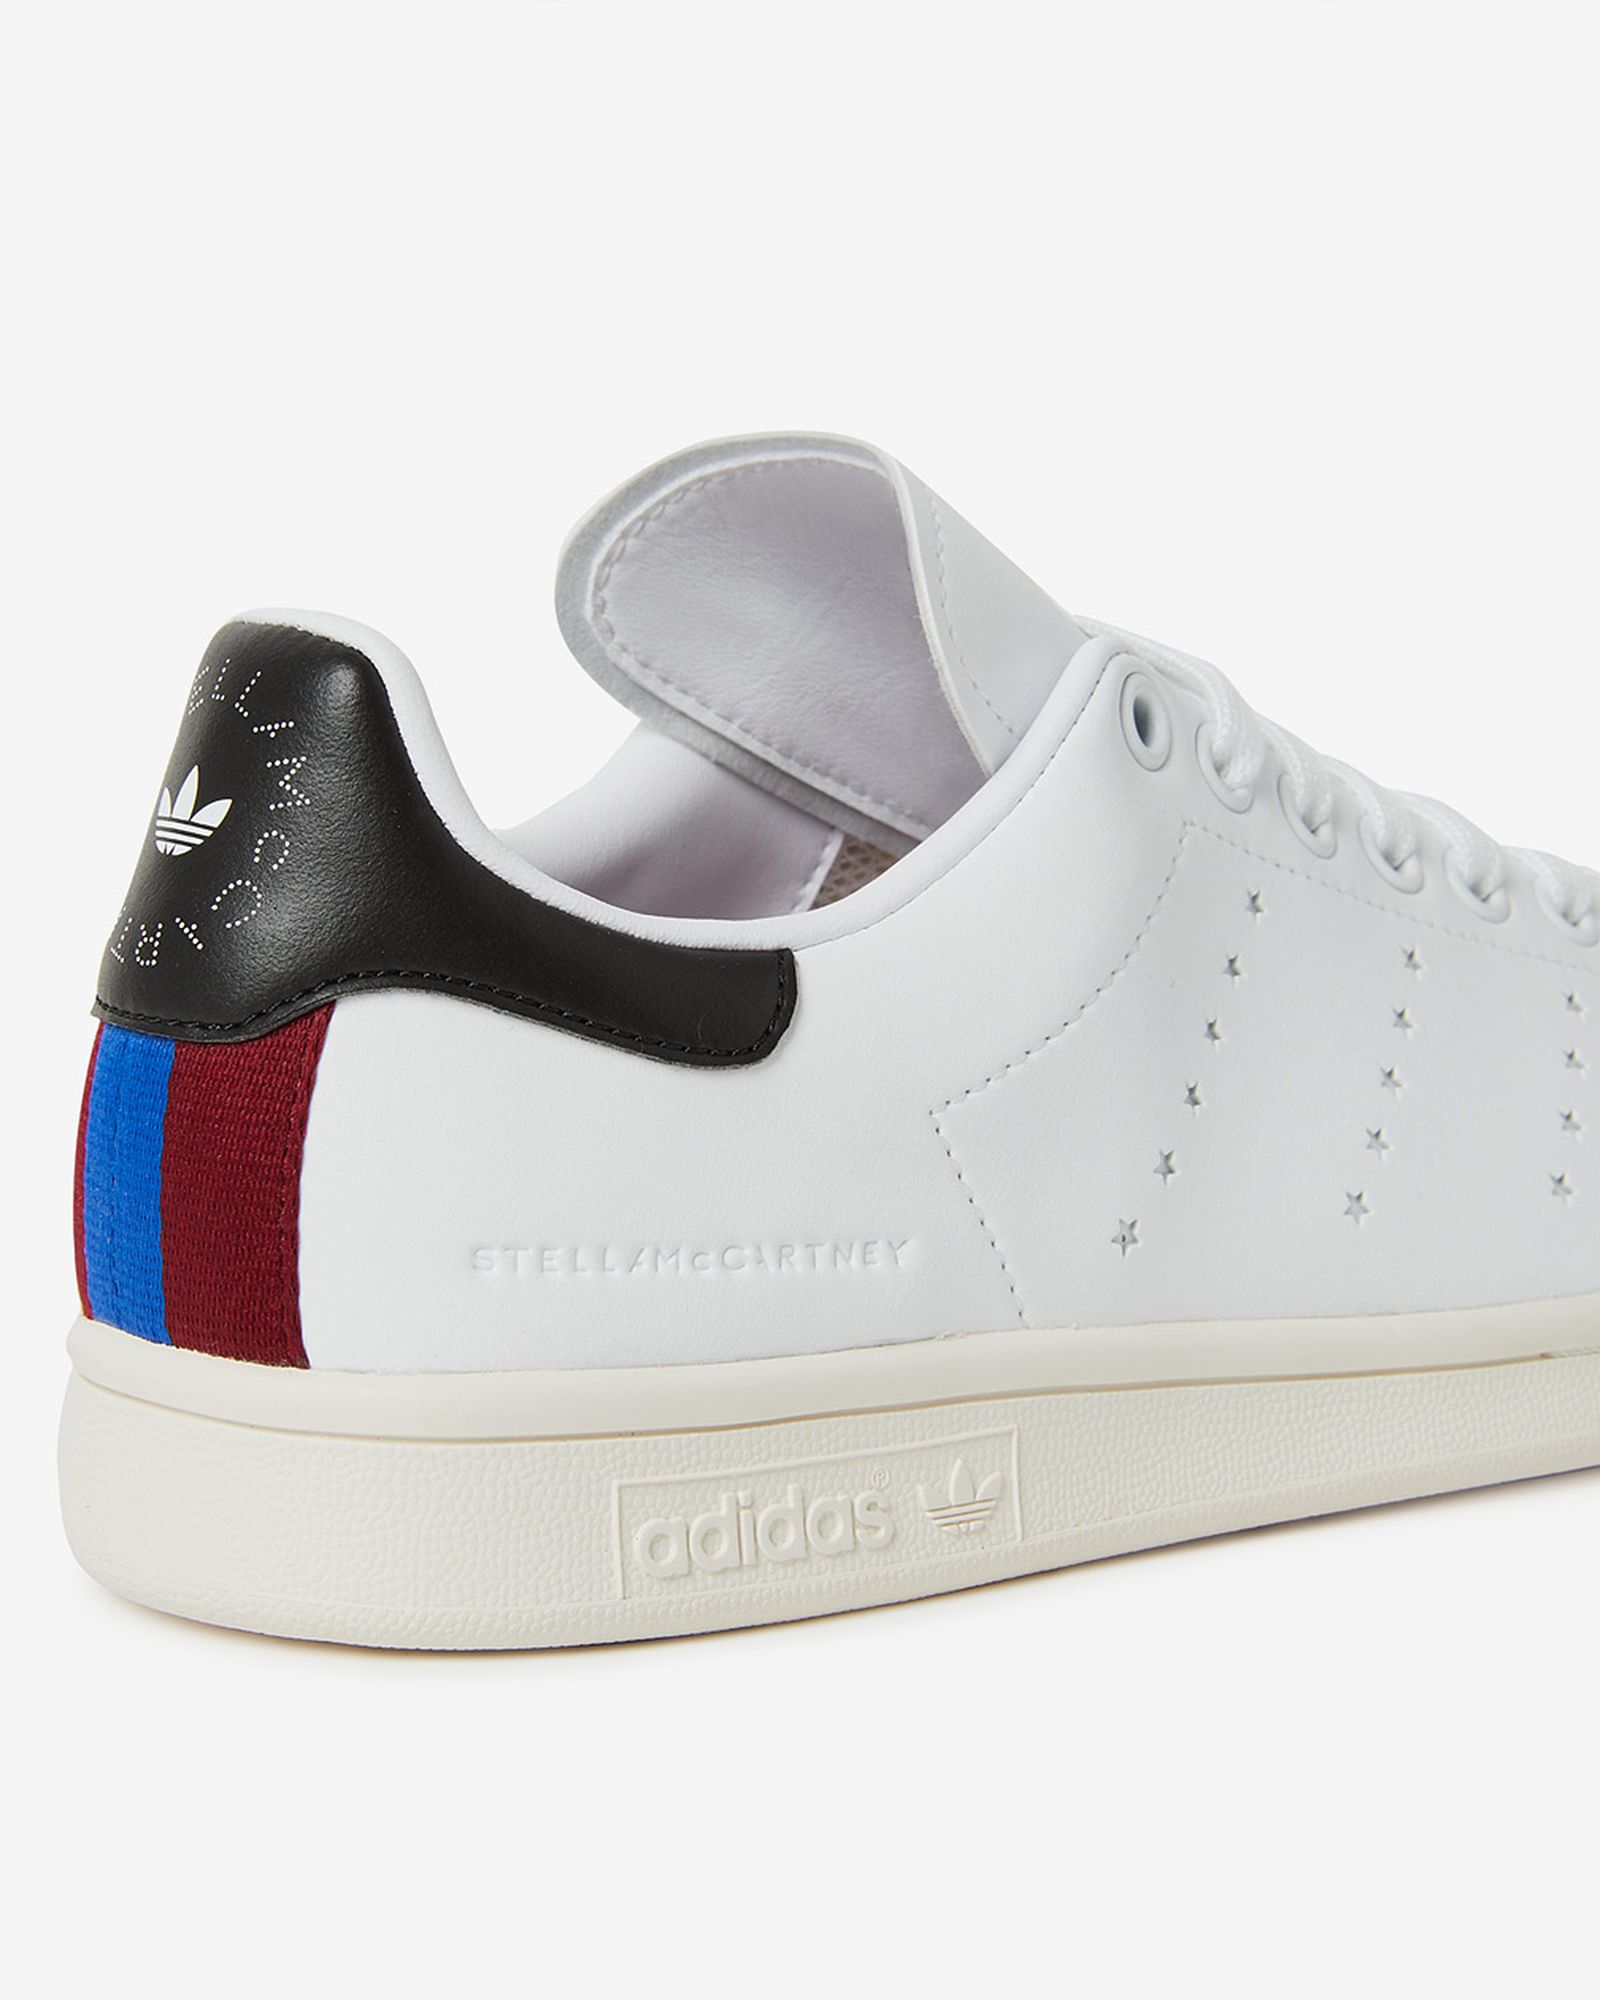 Stella McCartney x adidas Stan Smith: Official Release Info